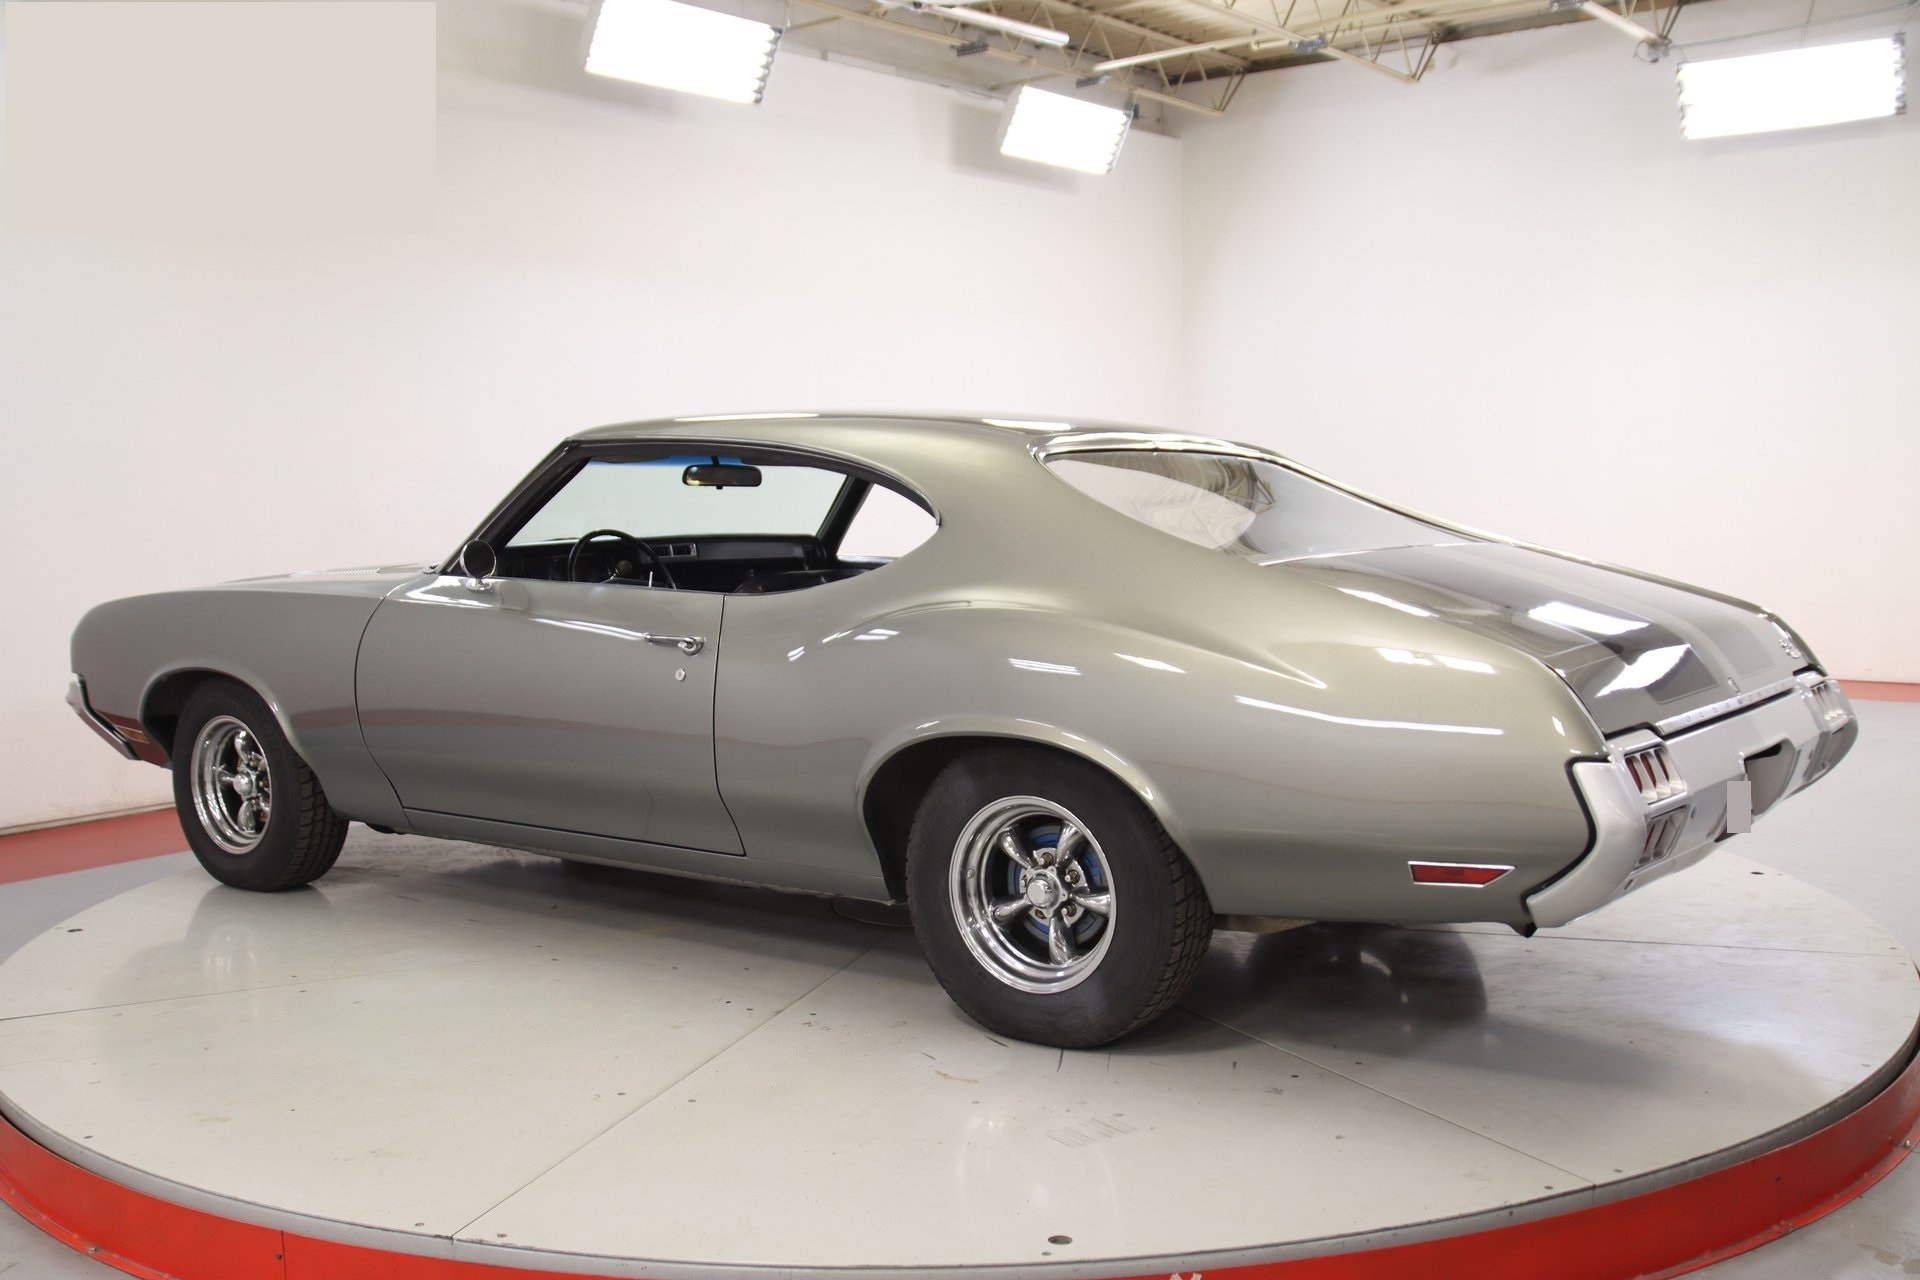 Cutlass 350ci V8 Automatique 197122 218€